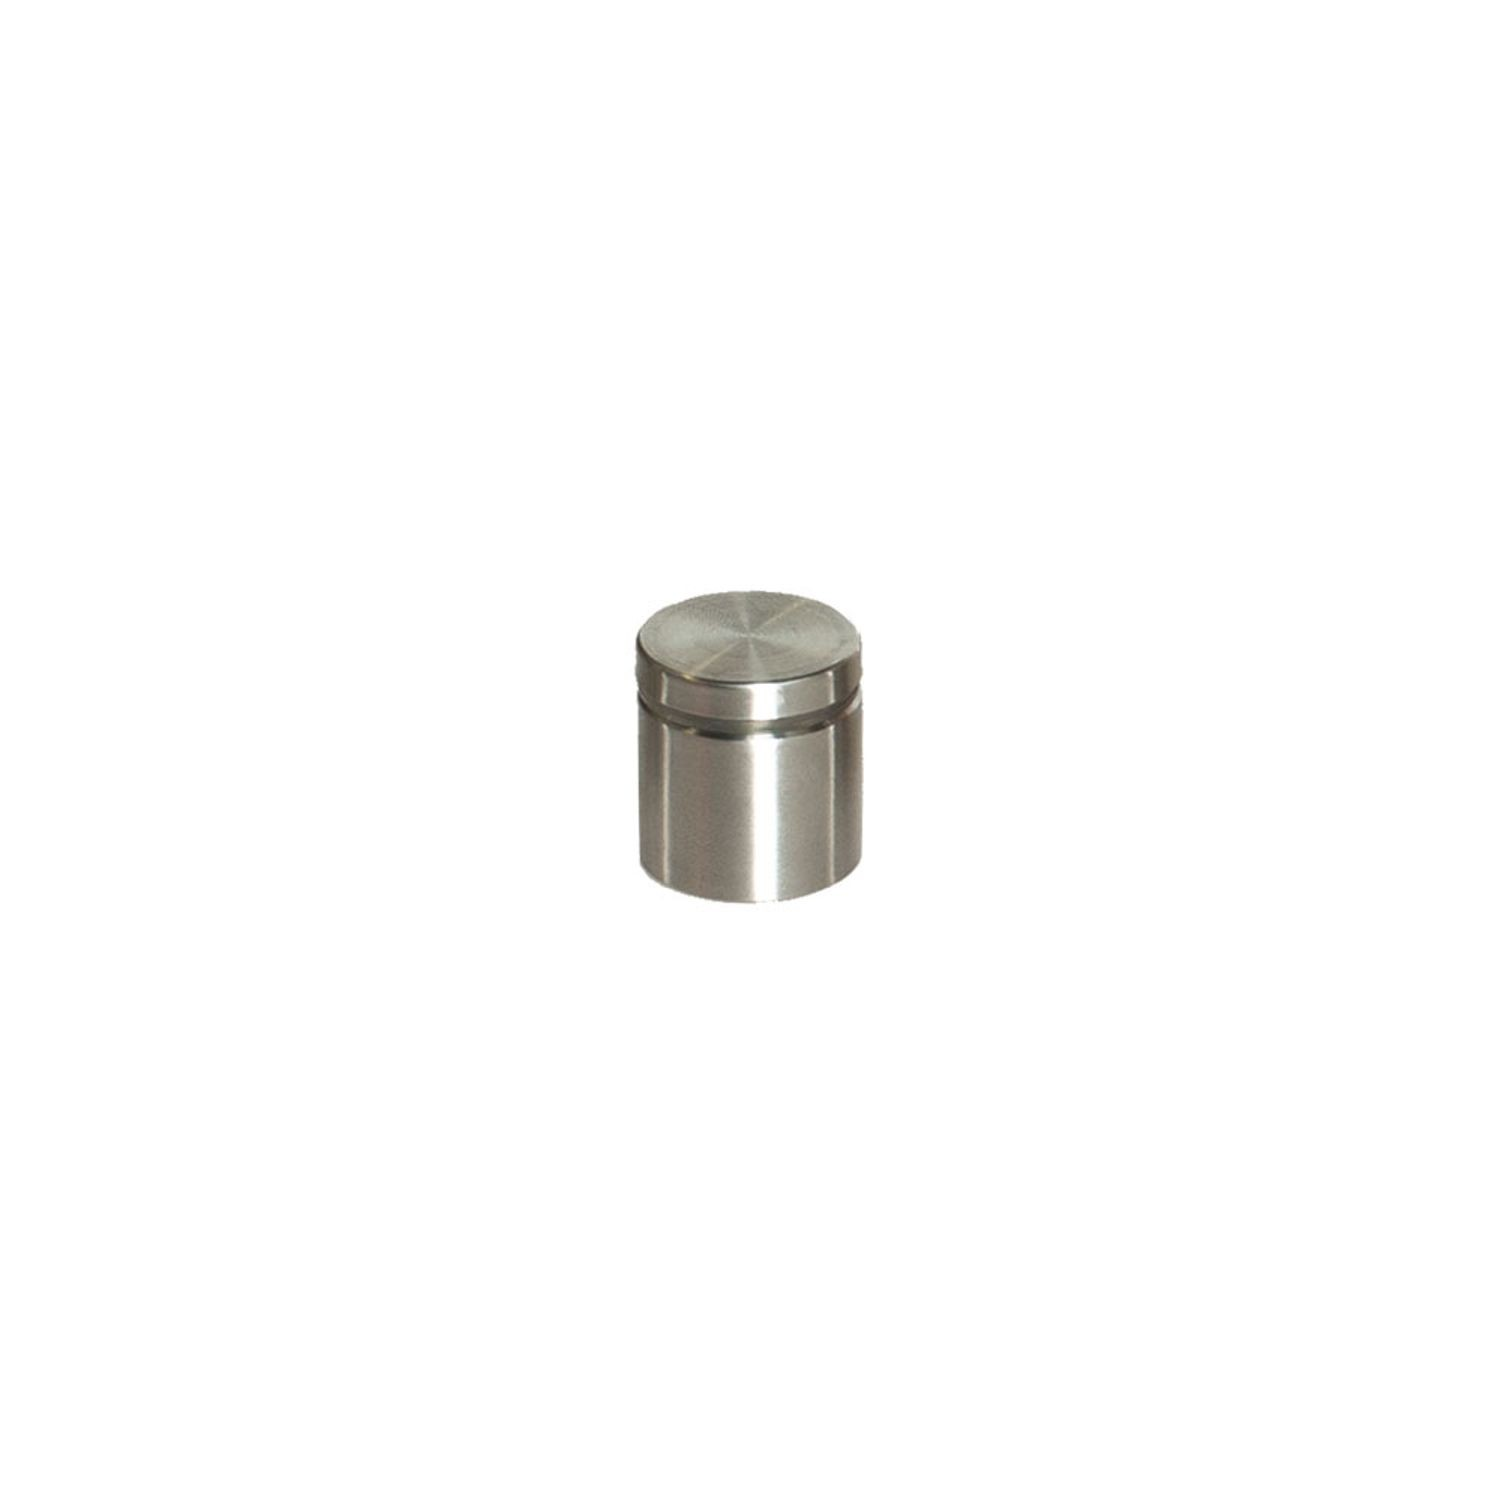 "1"" Diameter x 1"" Barrel Length Brushed Stainless Finish Eco Lite Series Easy Fasten Standoff"